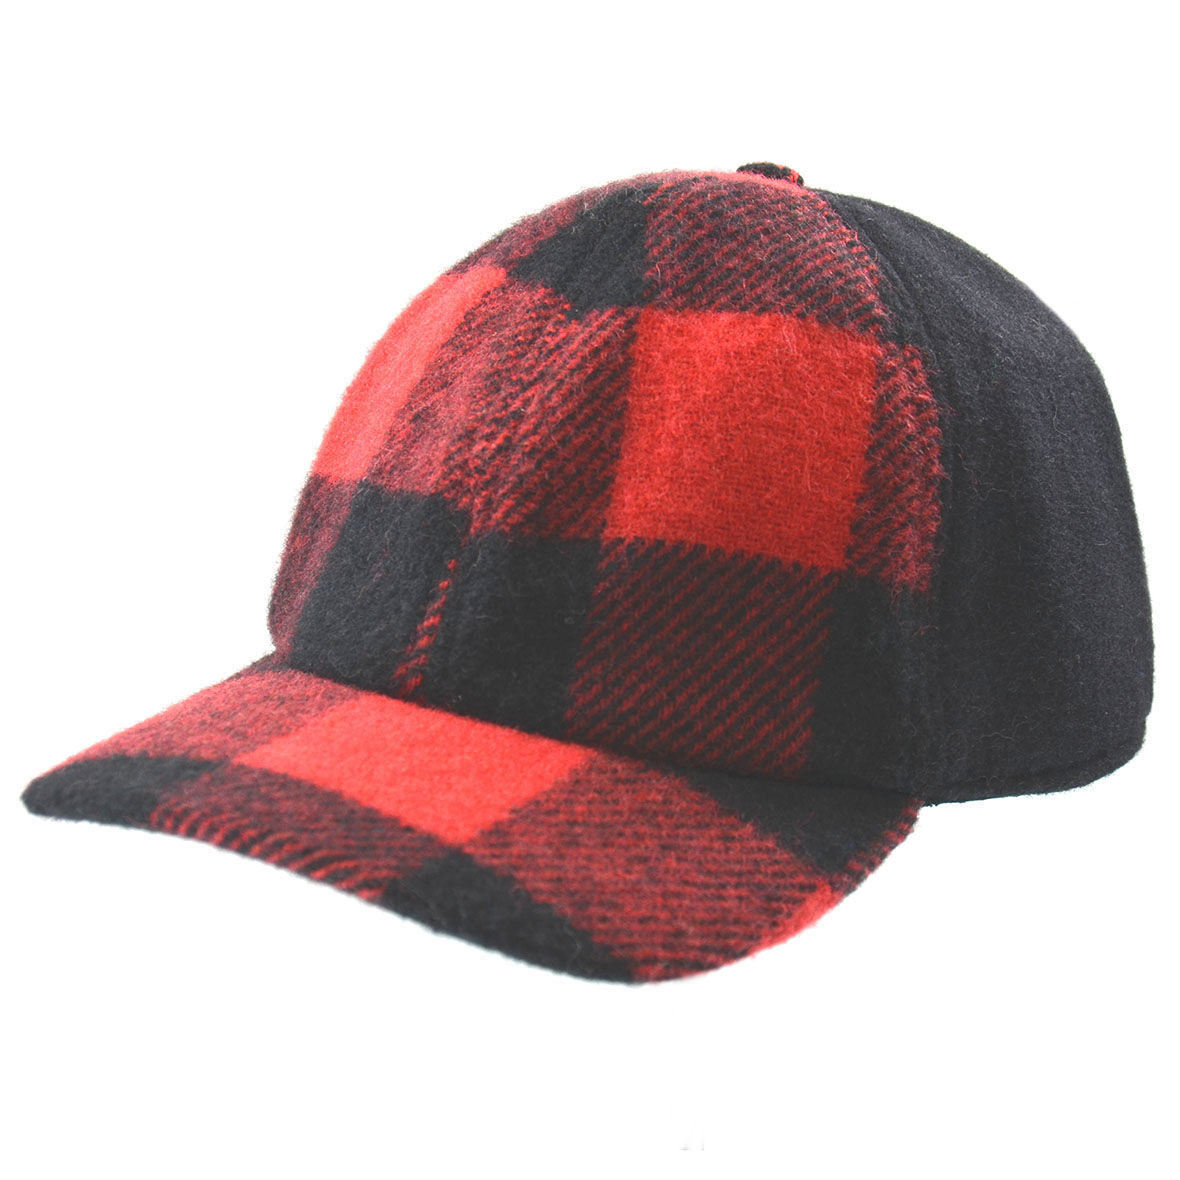 7941ef001f771 coupon code for volcom hunting cap brothers bc9af 6441c